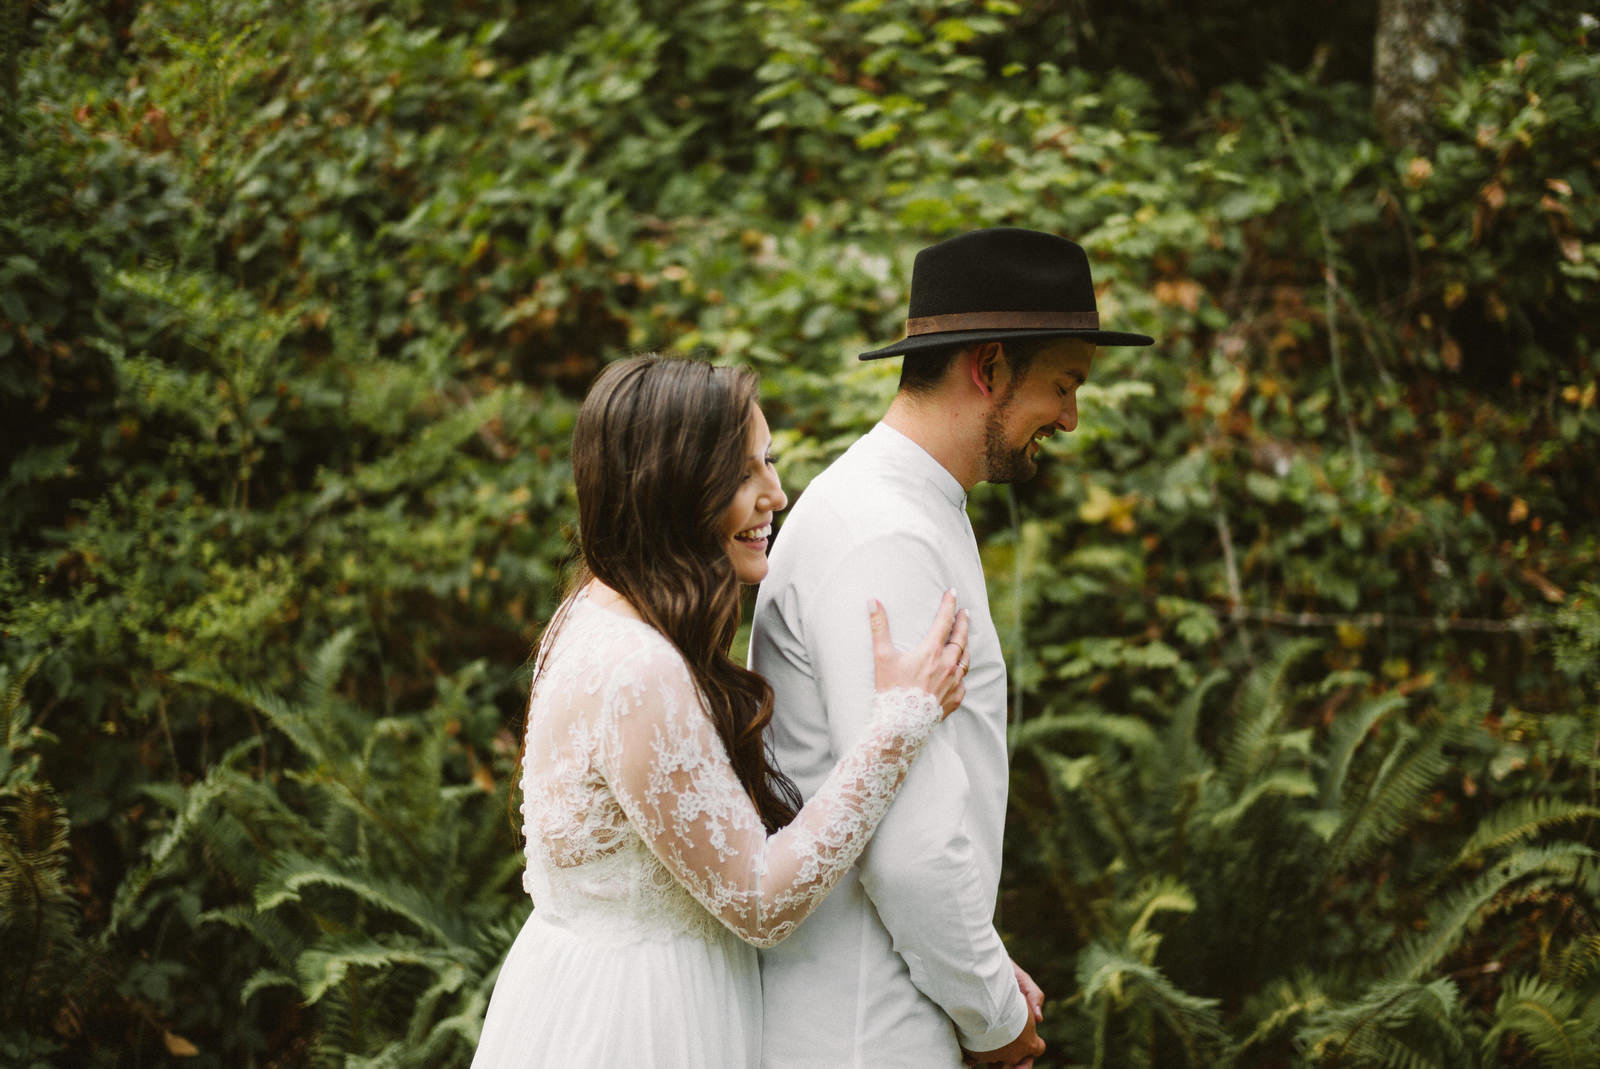 athena-and-camron-seattle-elopement-wedding-benj-haisch-rattlesnake-lake-christian-couple-goals3